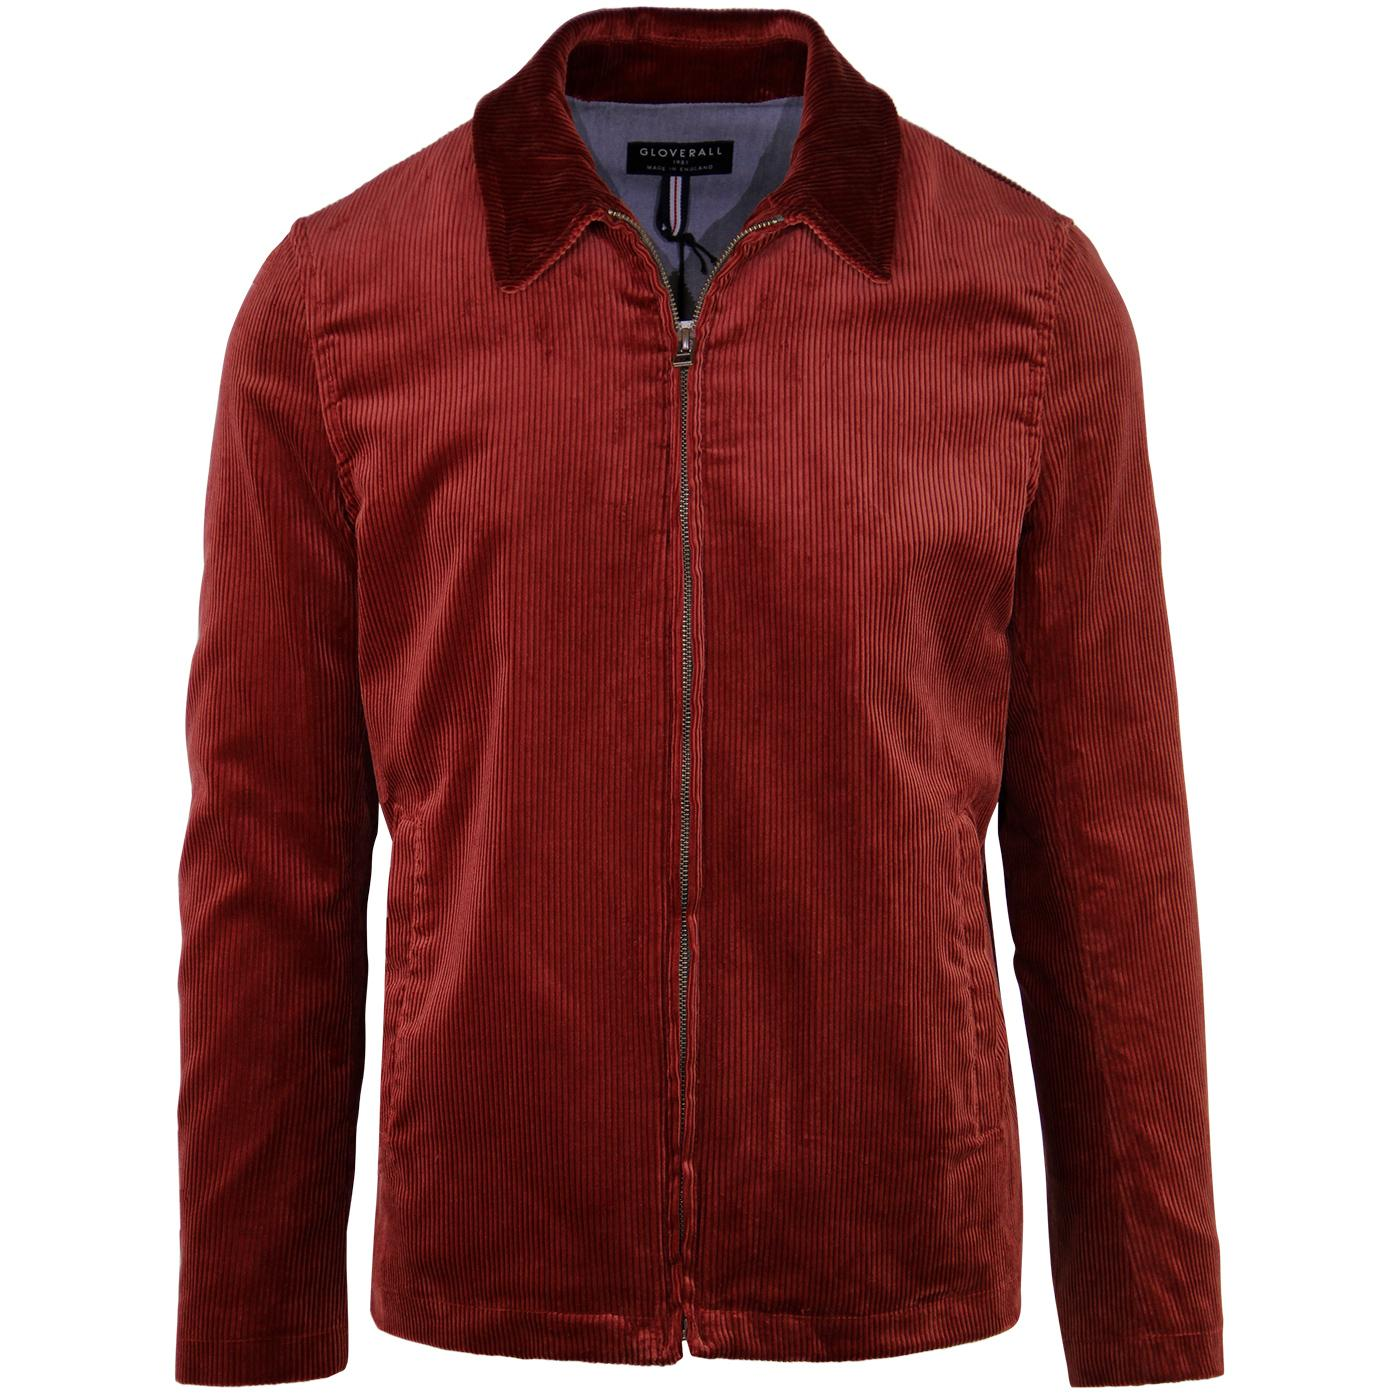 Musso GLOVERALL Retro Mod Cord Harrington (RUST)